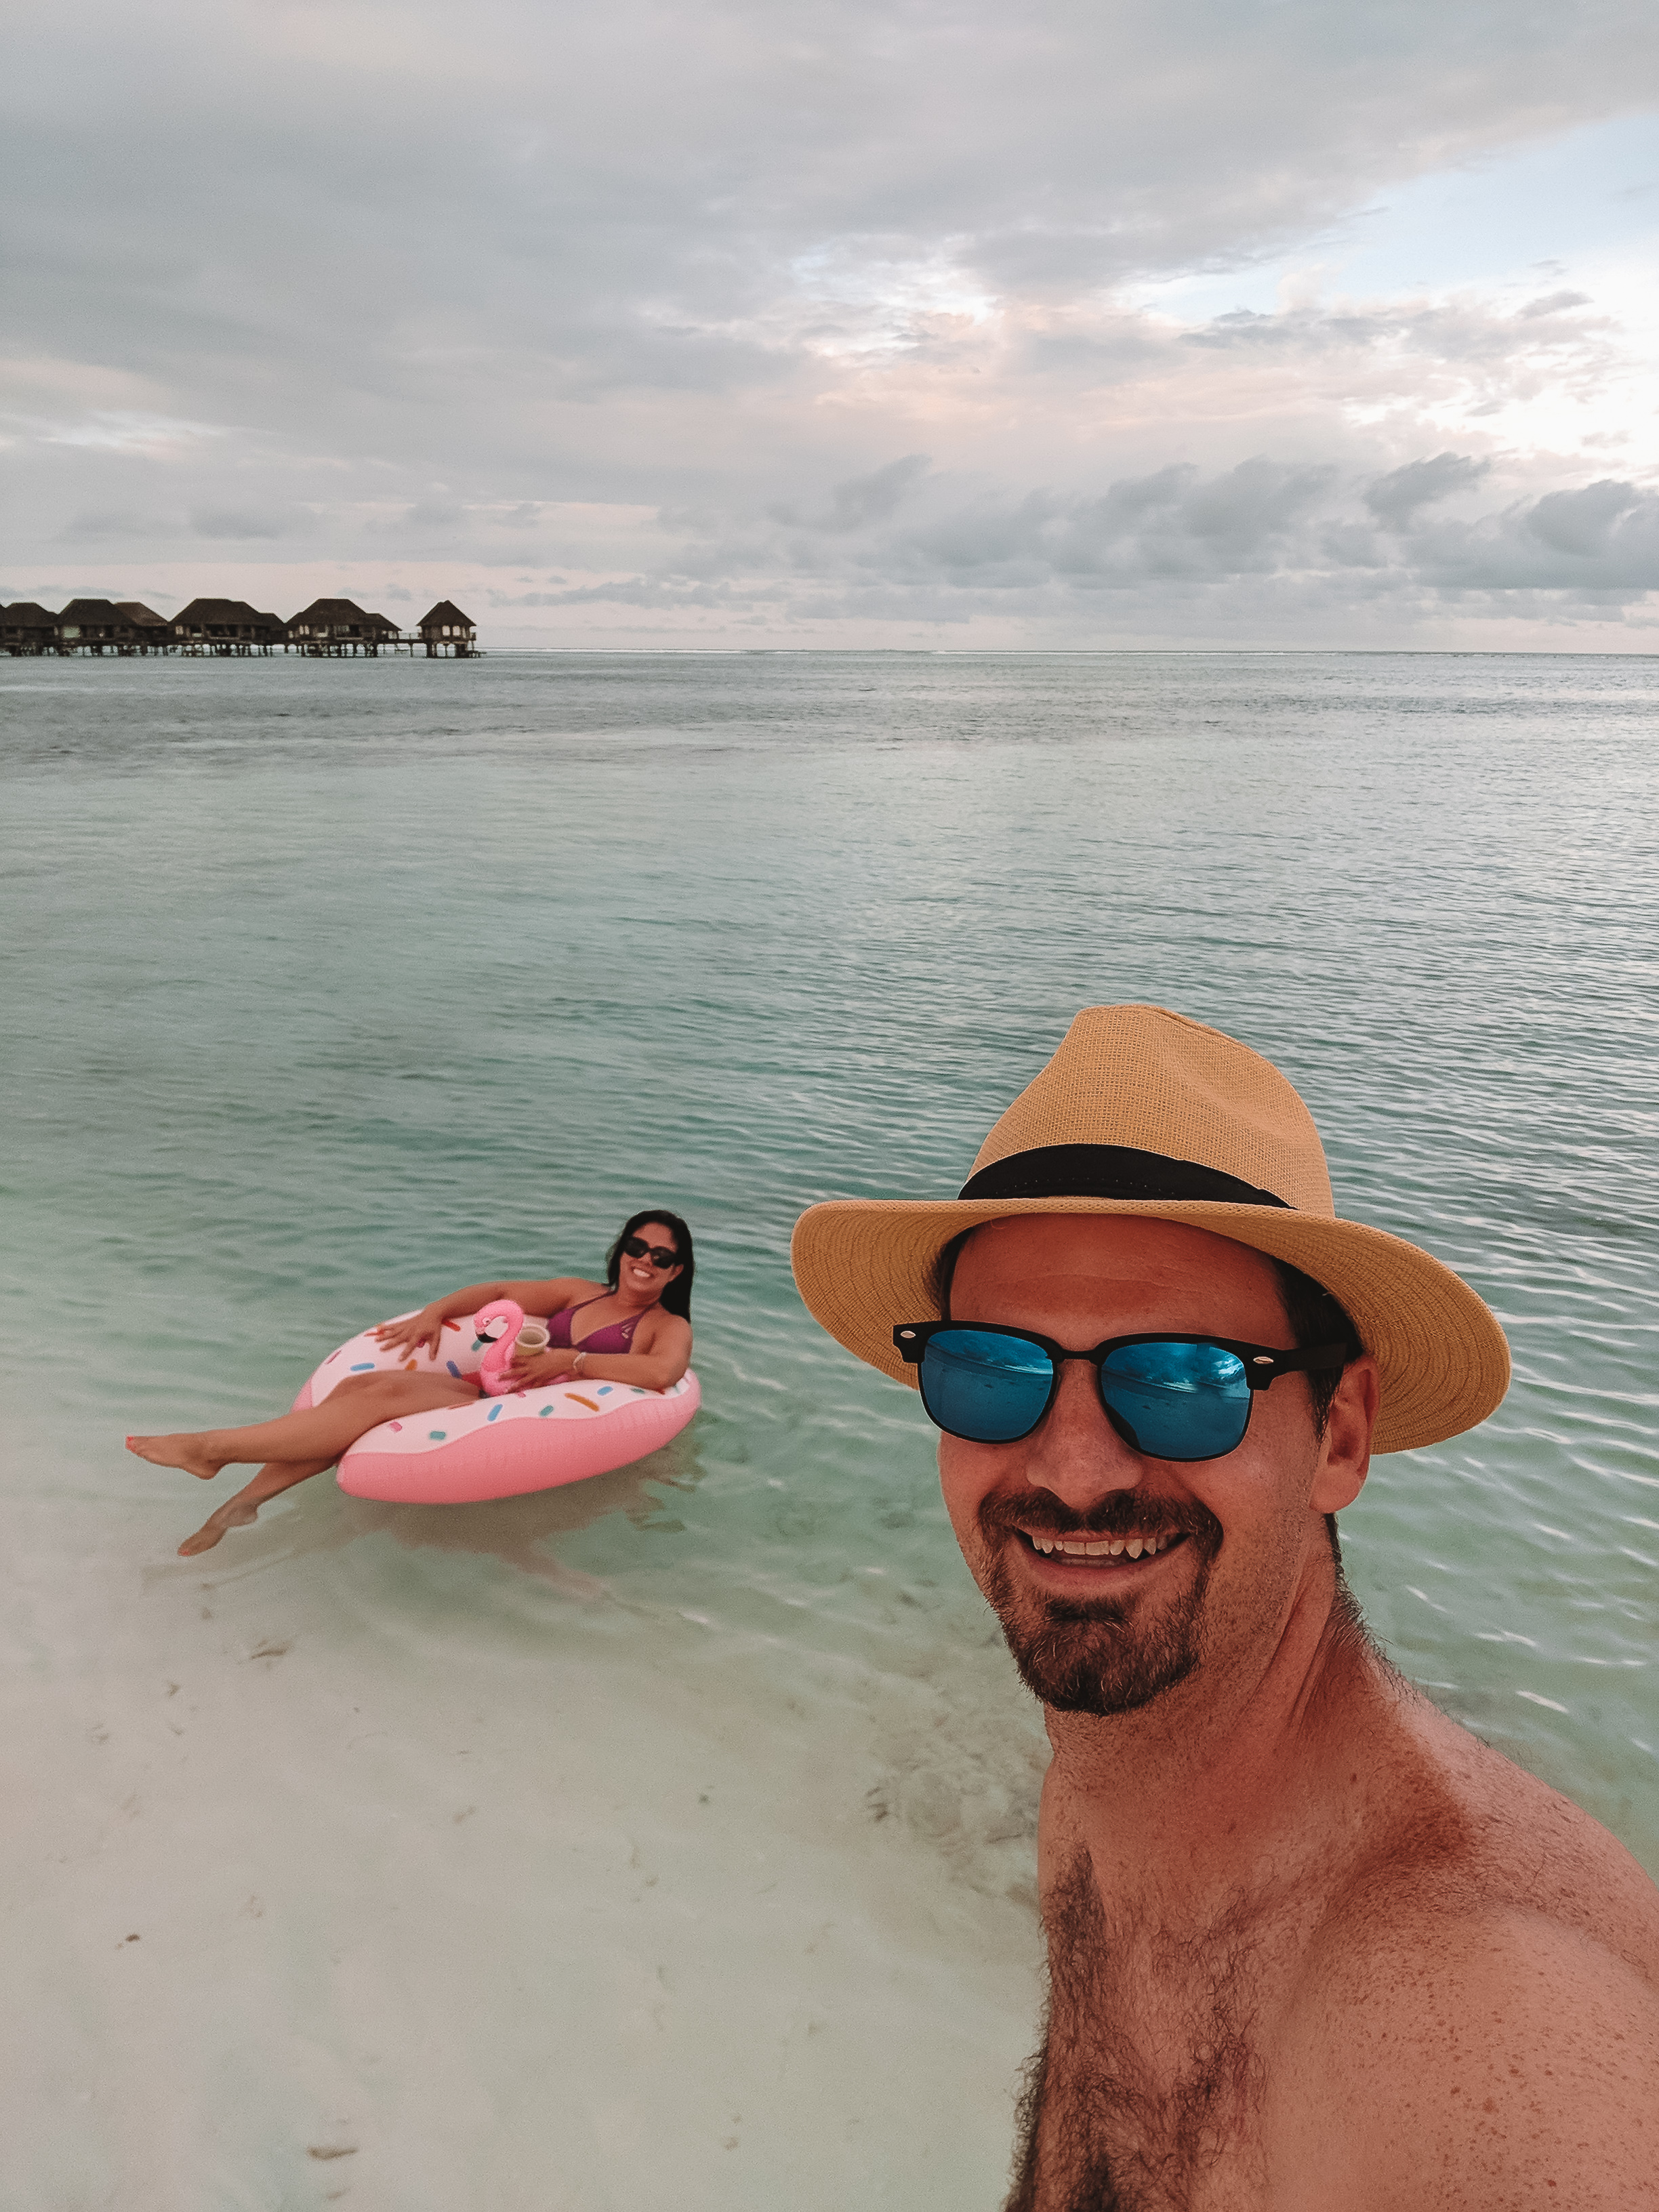 Kelly and Matt enjoy the Maldives on a local island with some fun pool floaties. boldlygotravel.com